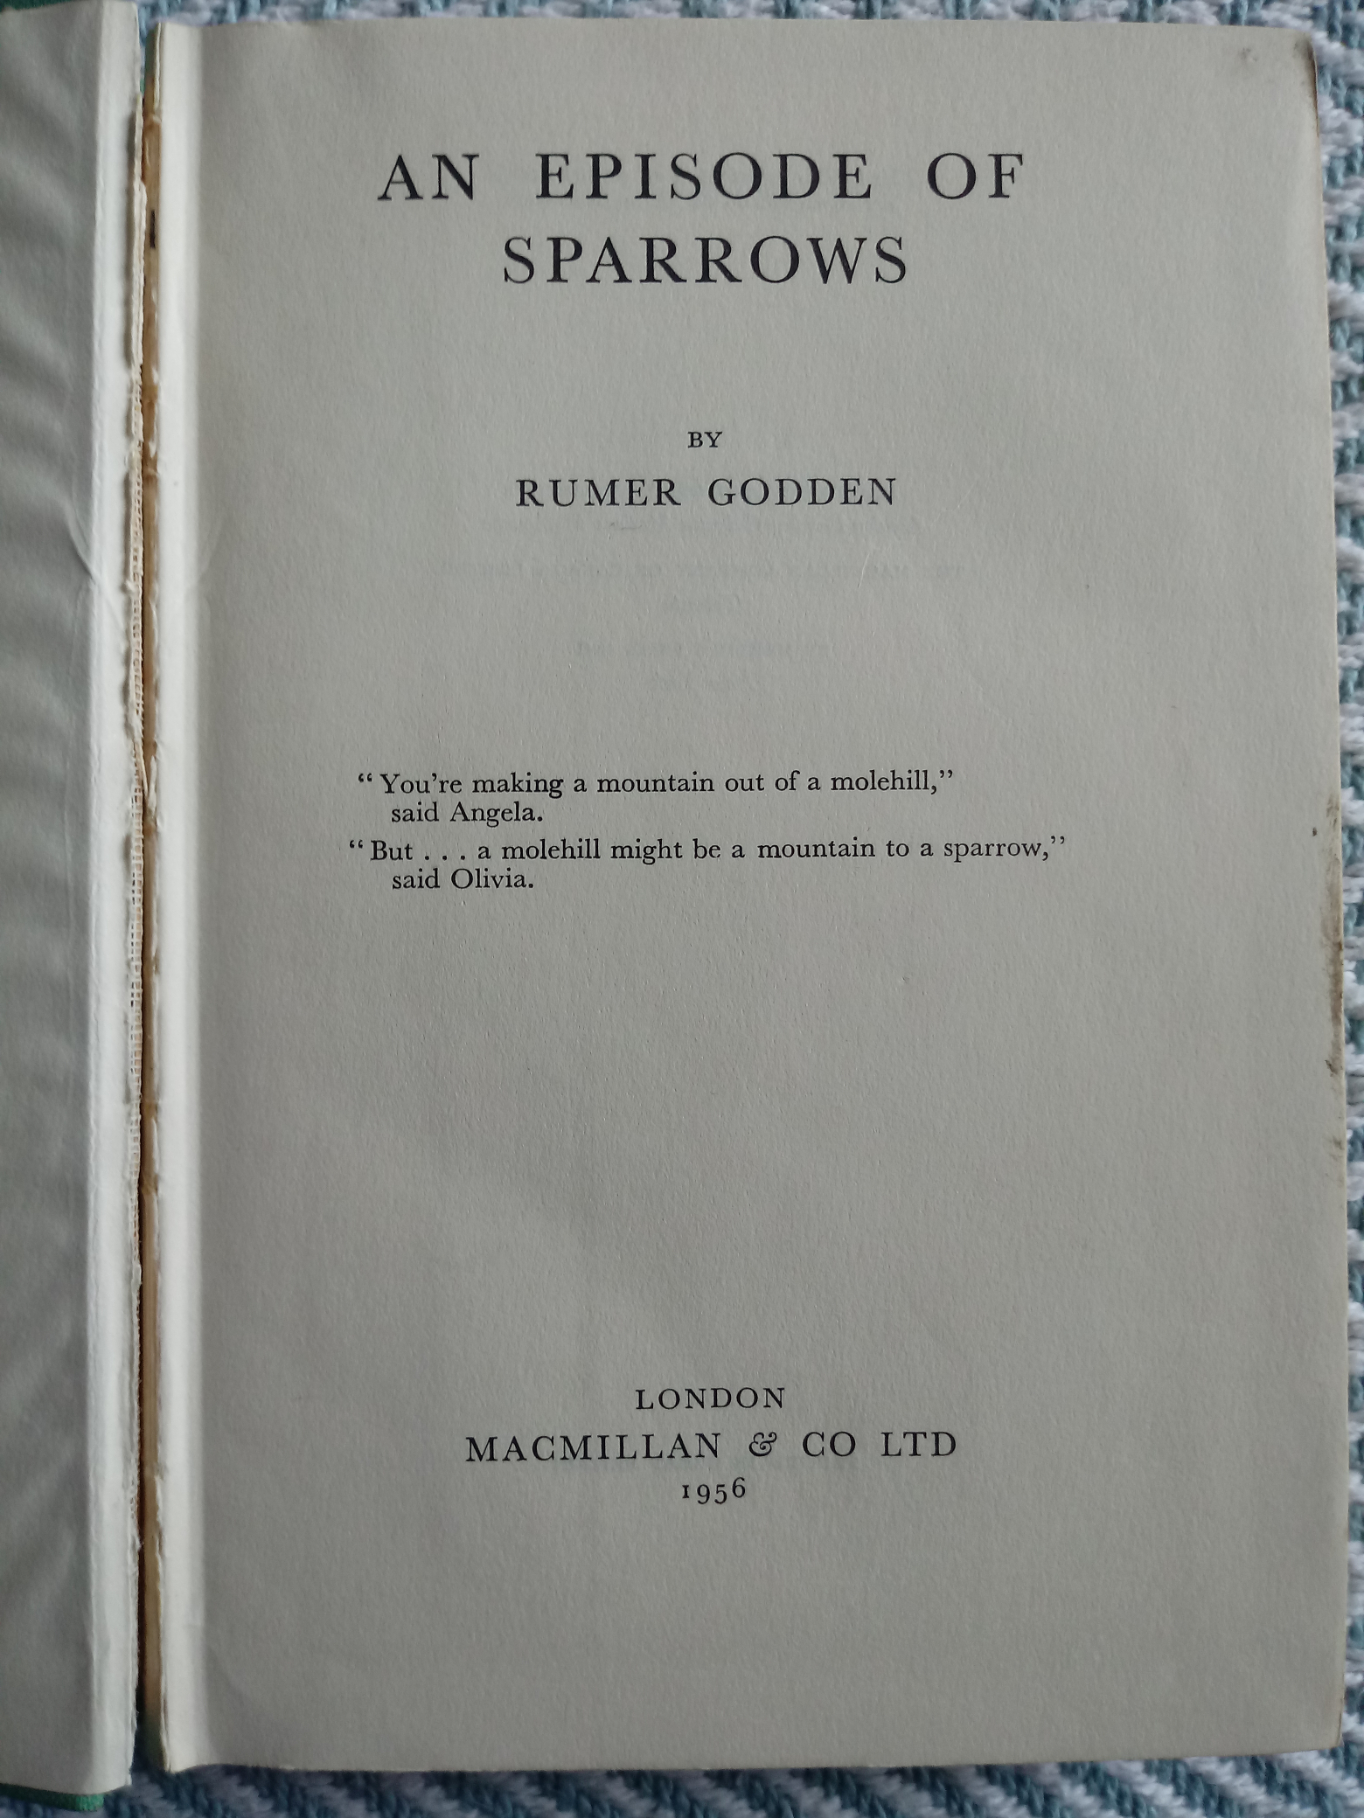 An Episode Of Sparrows by Rumer Godden 264 pages Published 1956 Macmillan & Co Ltd. Showing signs of - Image 3 of 3